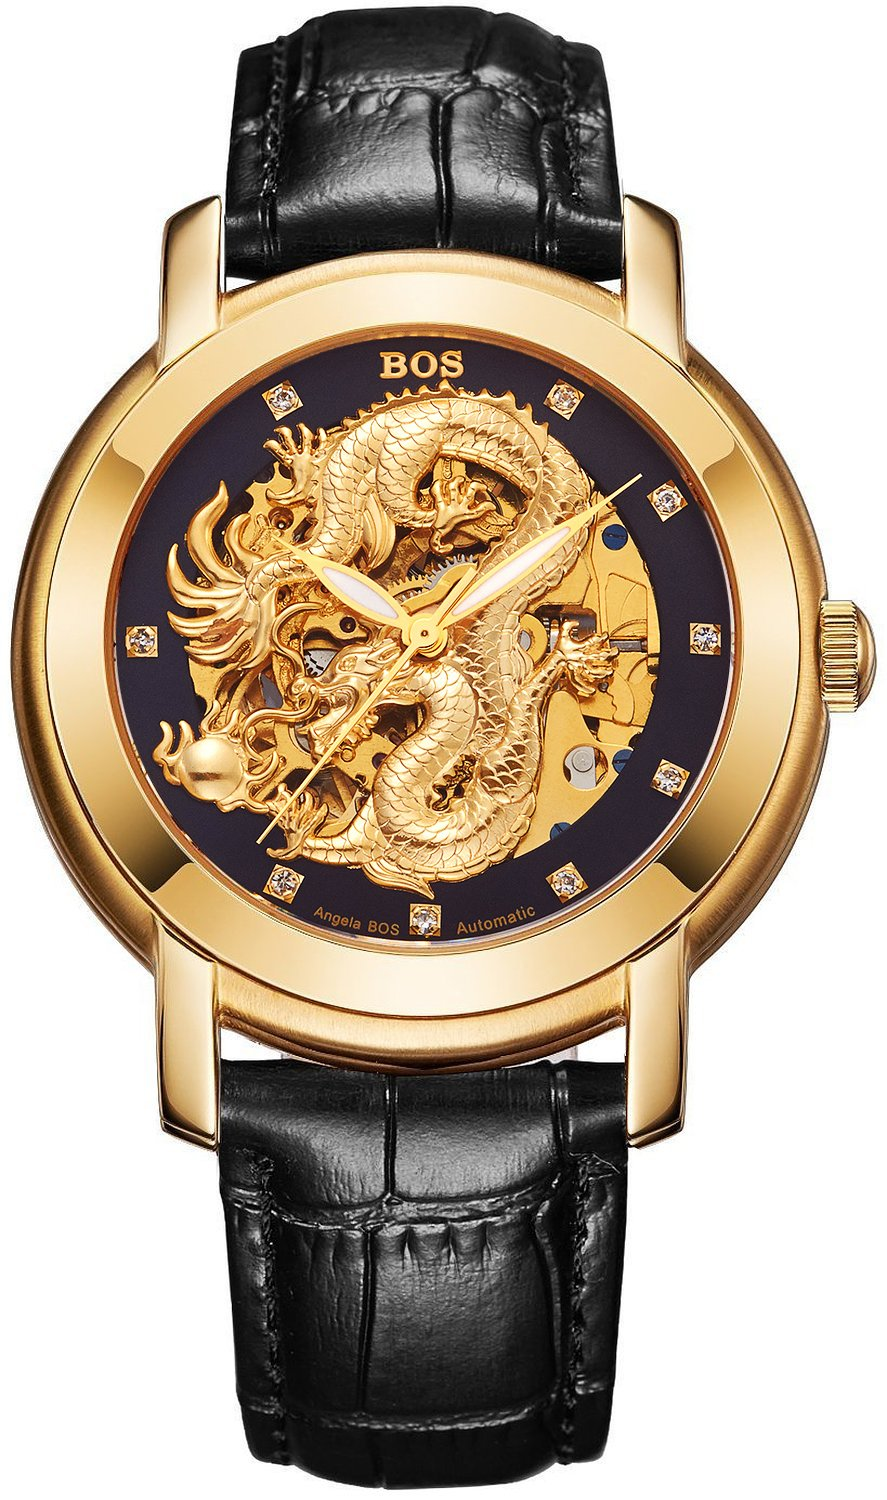 BOS Men's Gold Watch Dragon Carved Luxury Business Watch Automatic Mechanical Stainless Steel Waterproof Watch w/ Calfskin Band